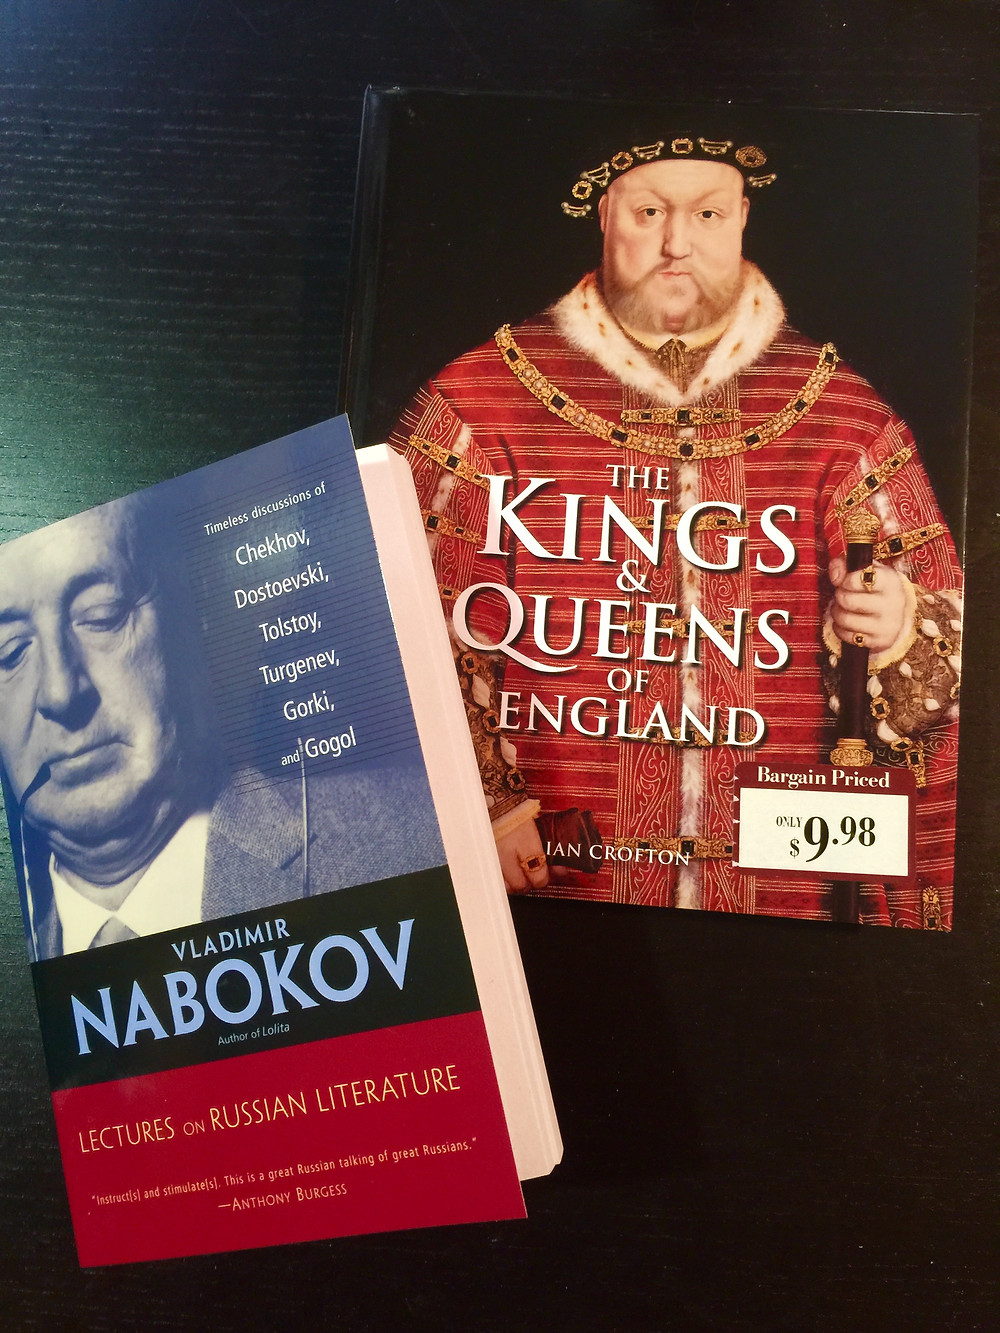 Vladimir Nabokov King Henry VIII England, Lectures on Russian Literature Tolstoy